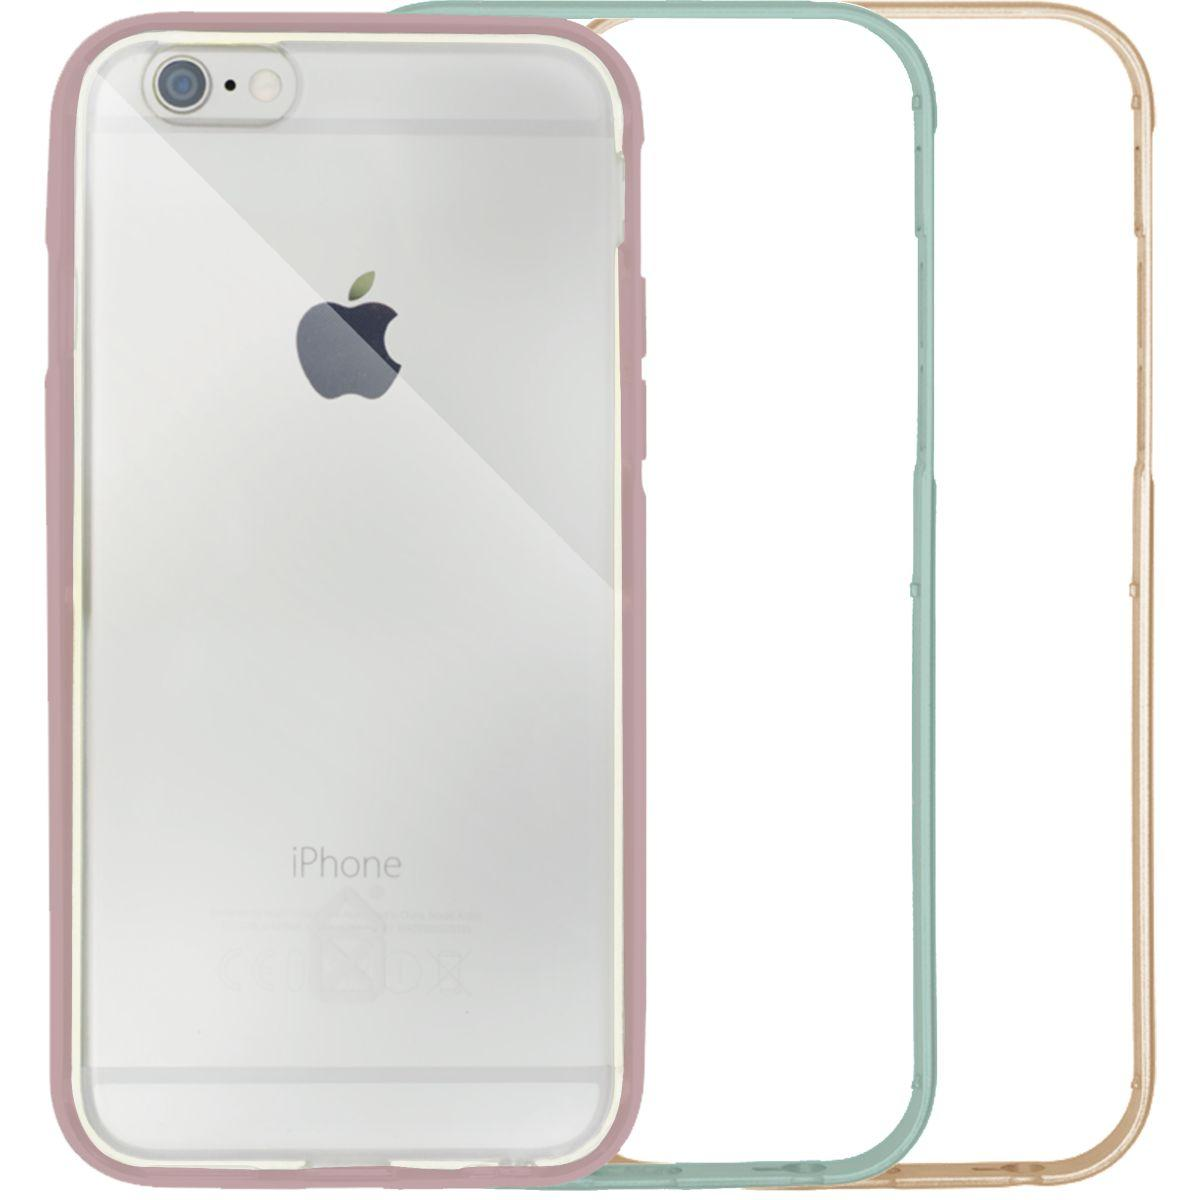 Bumper case scenario 3 en 1 doré iphone 5s/se - 7% de remise immédiate avec le code : multi7 (photo)